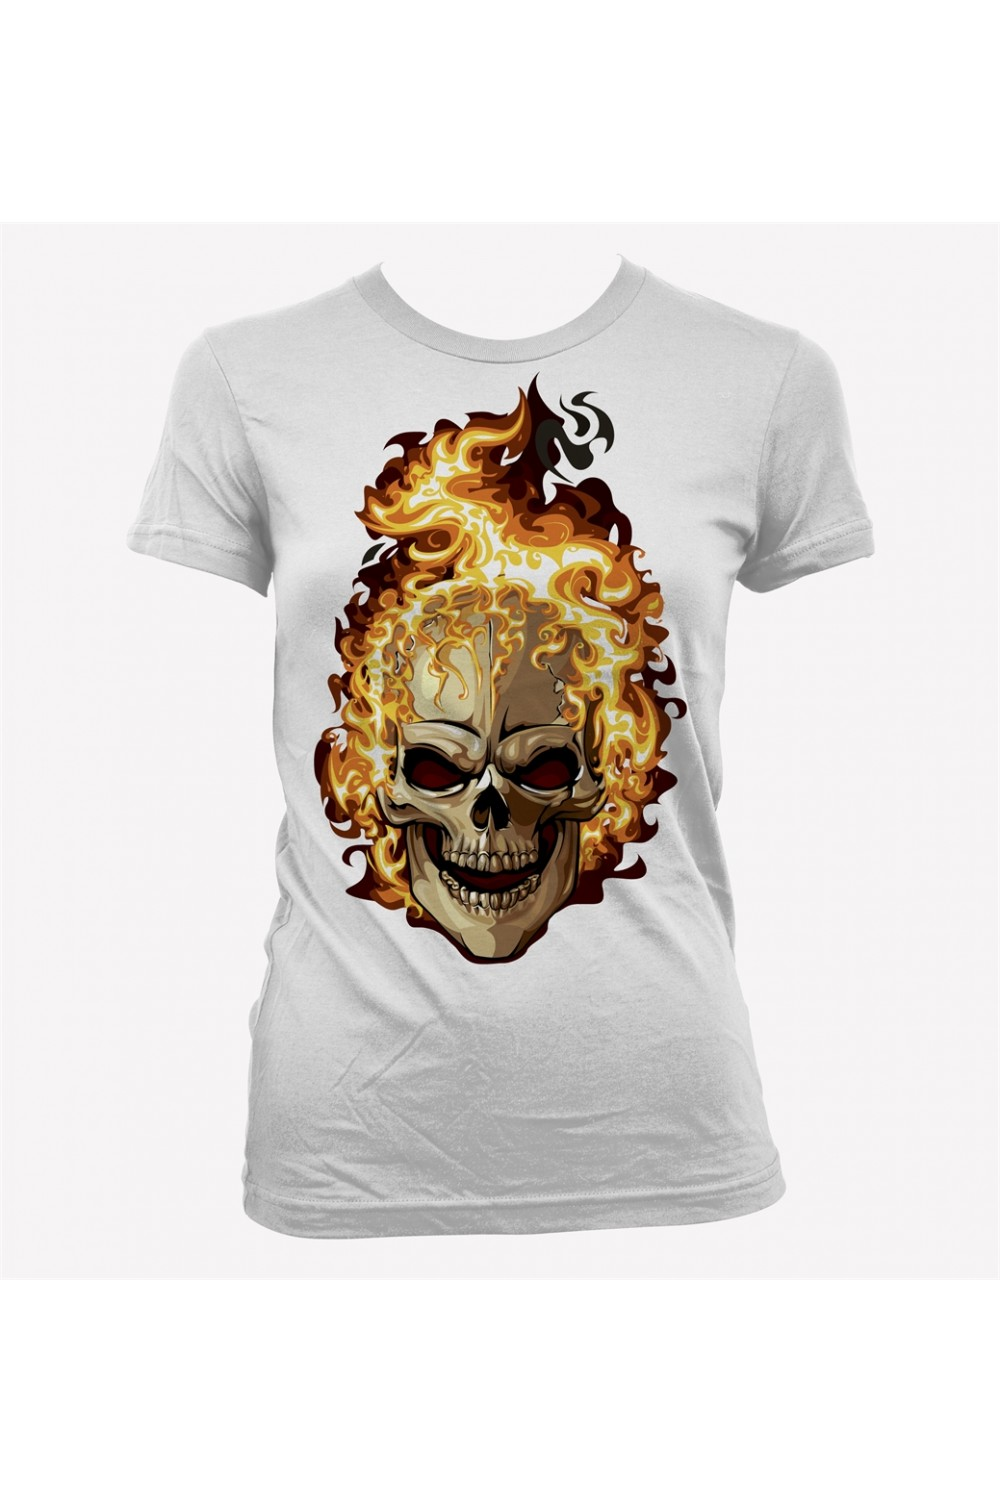 Flaming Skull Women Printed T shirt 4014